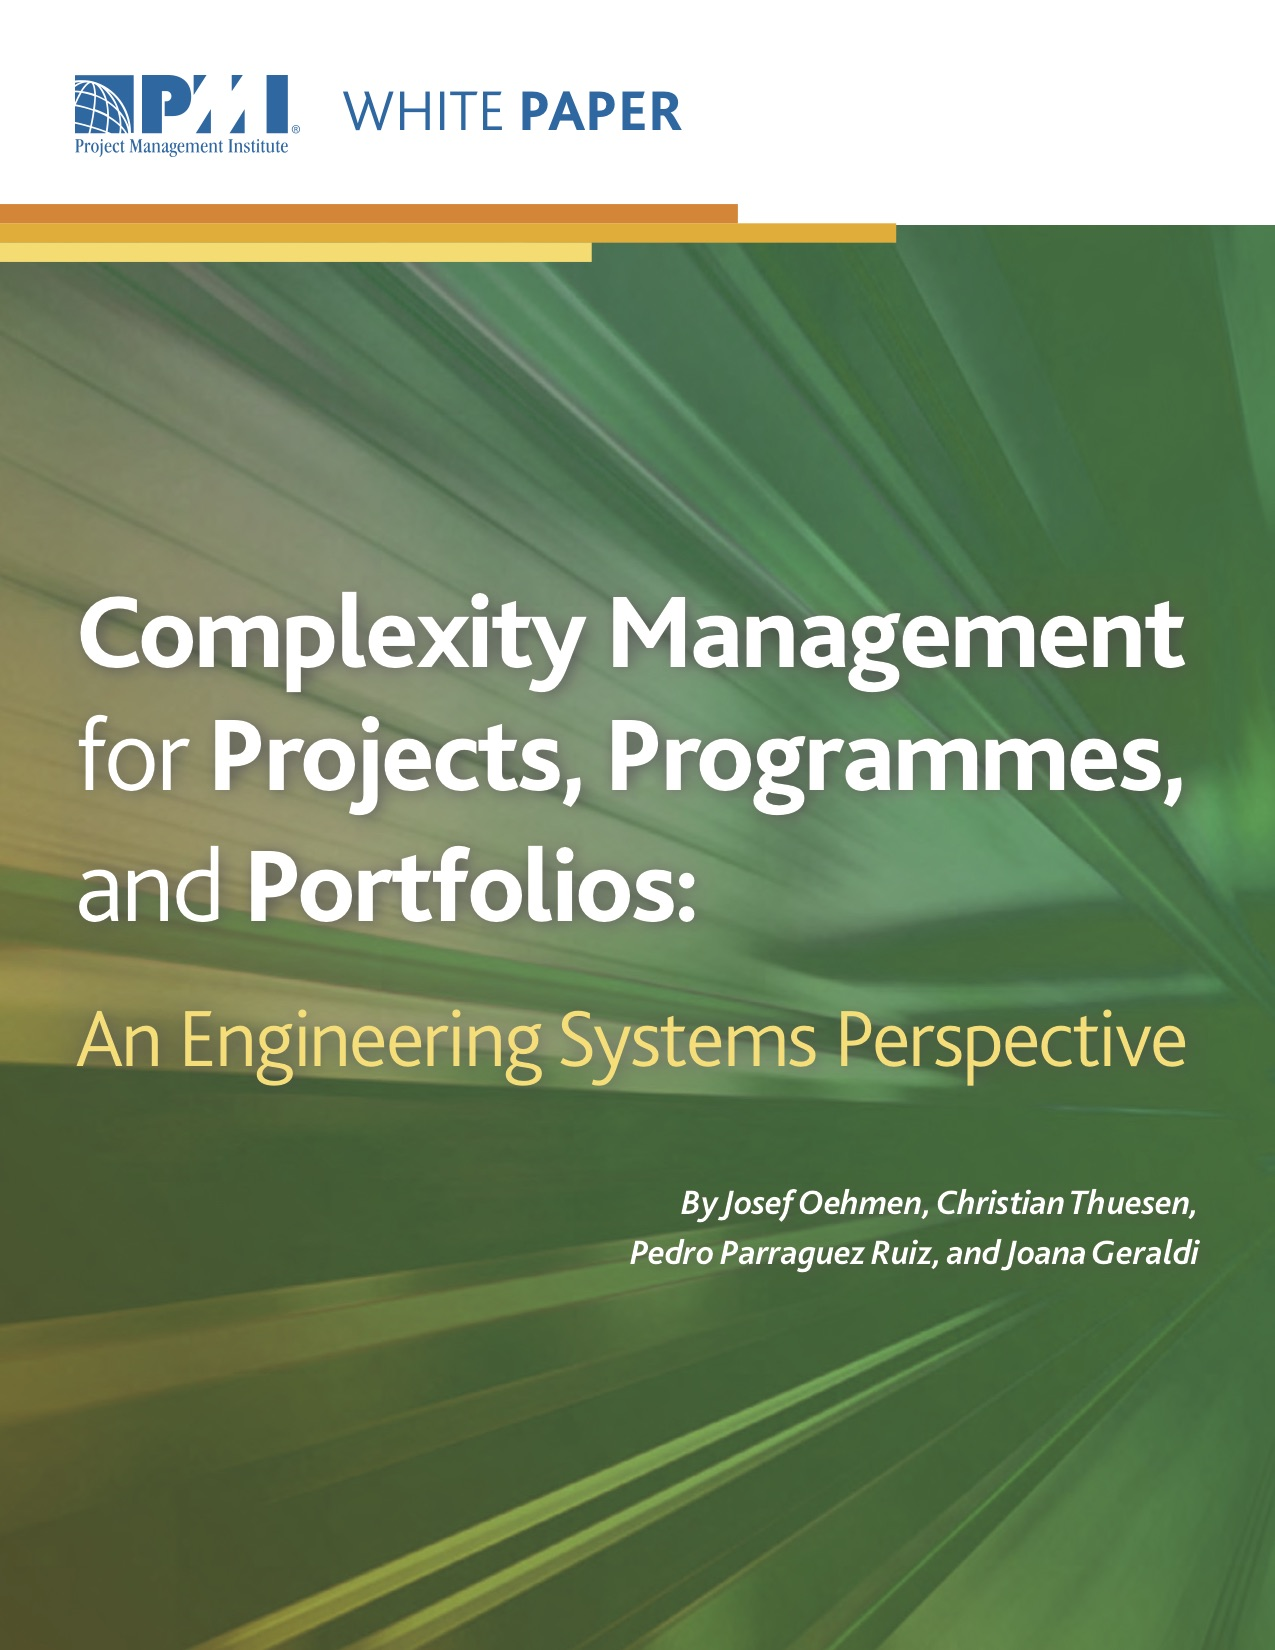 project management paper mgt 437 Project management paper 437-project-managment-complete-class-includes-all-dqs-individual-and-team-assignments-uop-latest/ mgt 437 project management.